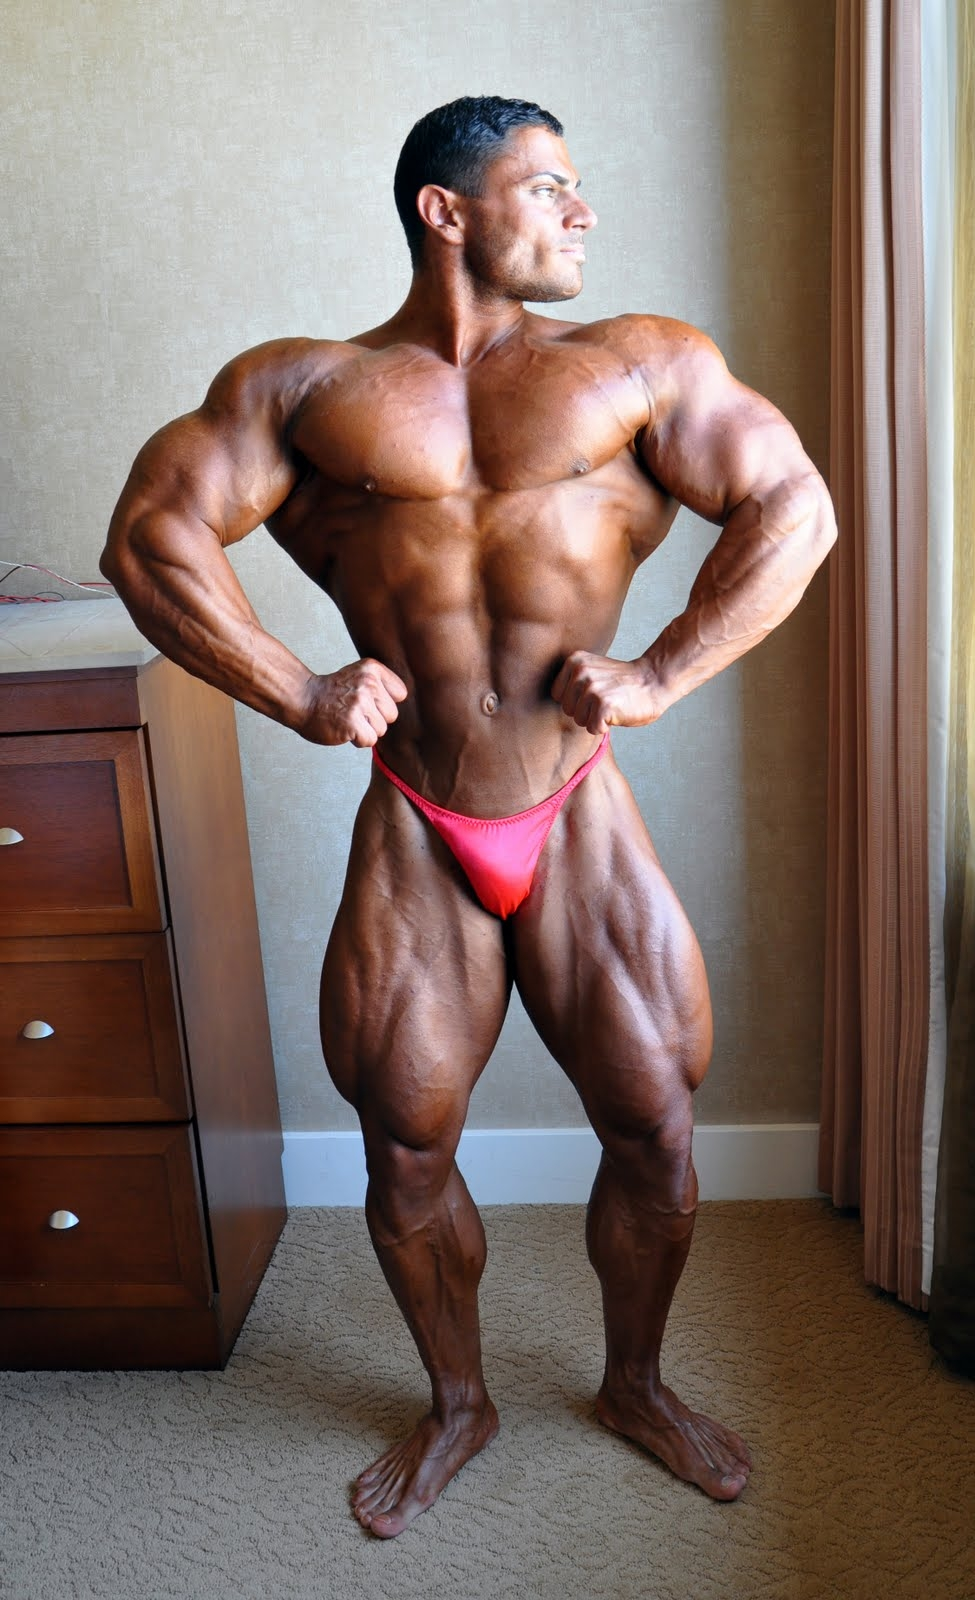 dobri delev 10 30 and almost escaping posted by muscleposer